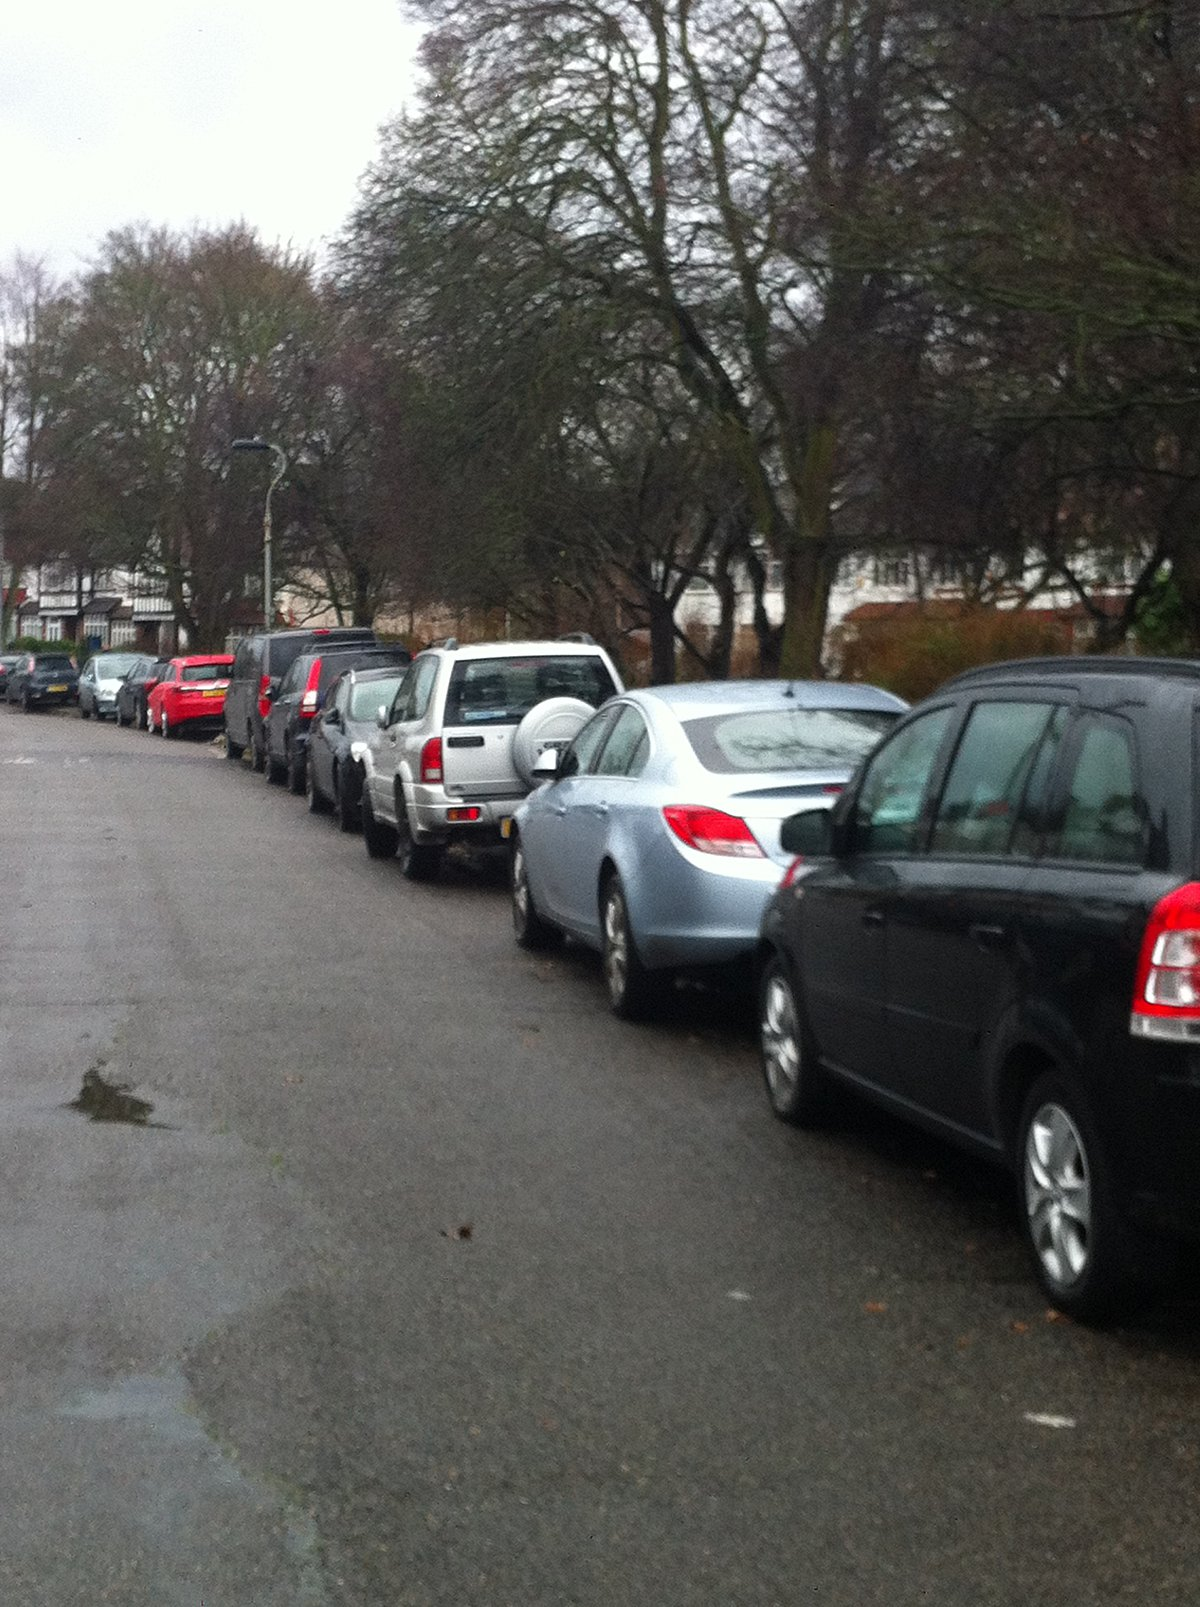 Lee residents fuming after hire car company parks fleet of around 40 cars outside homes